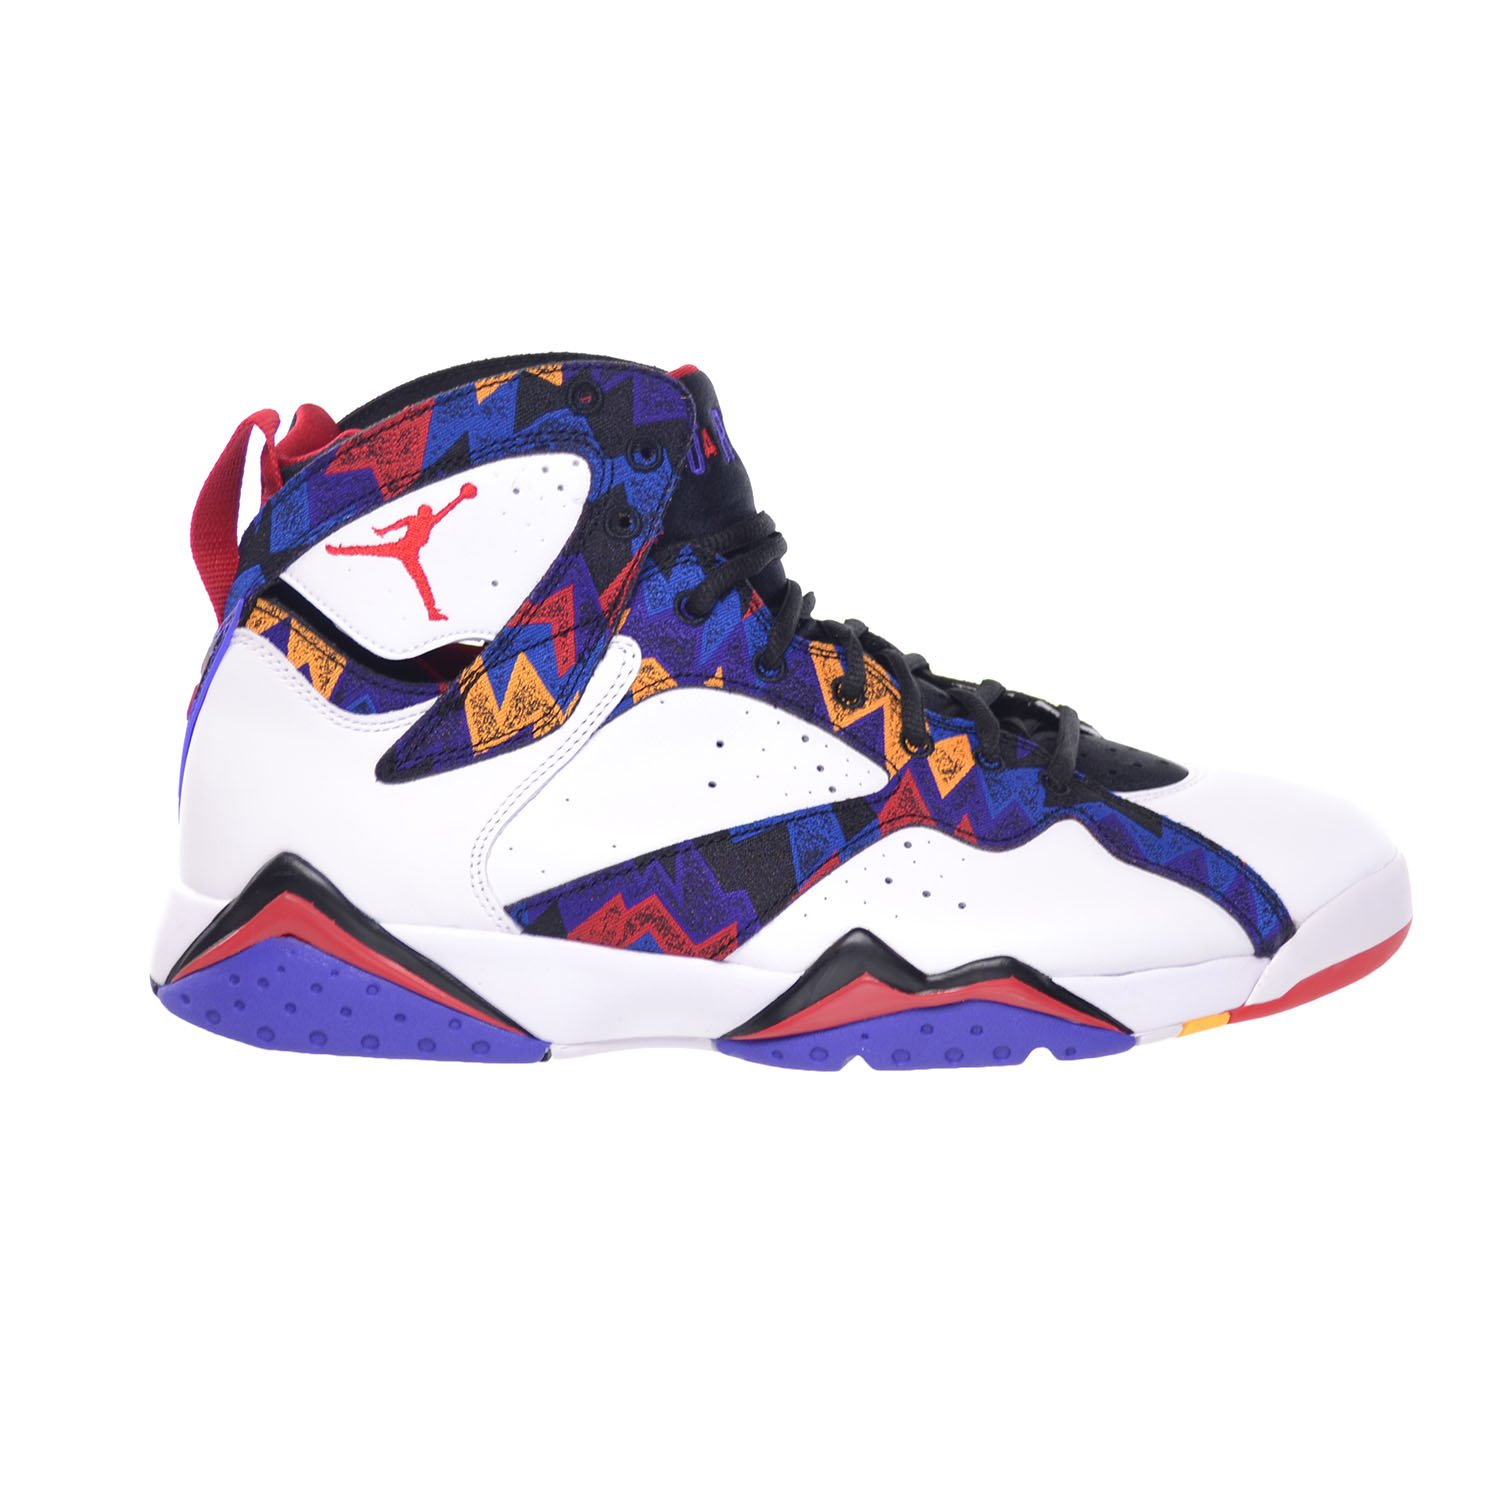 check out 1c636 eb682 Amazon.com   Jordan Air 7 Retro Sweater Mens  Shoes White University  Red-Black-Bright Concord 304775-142   Basketball